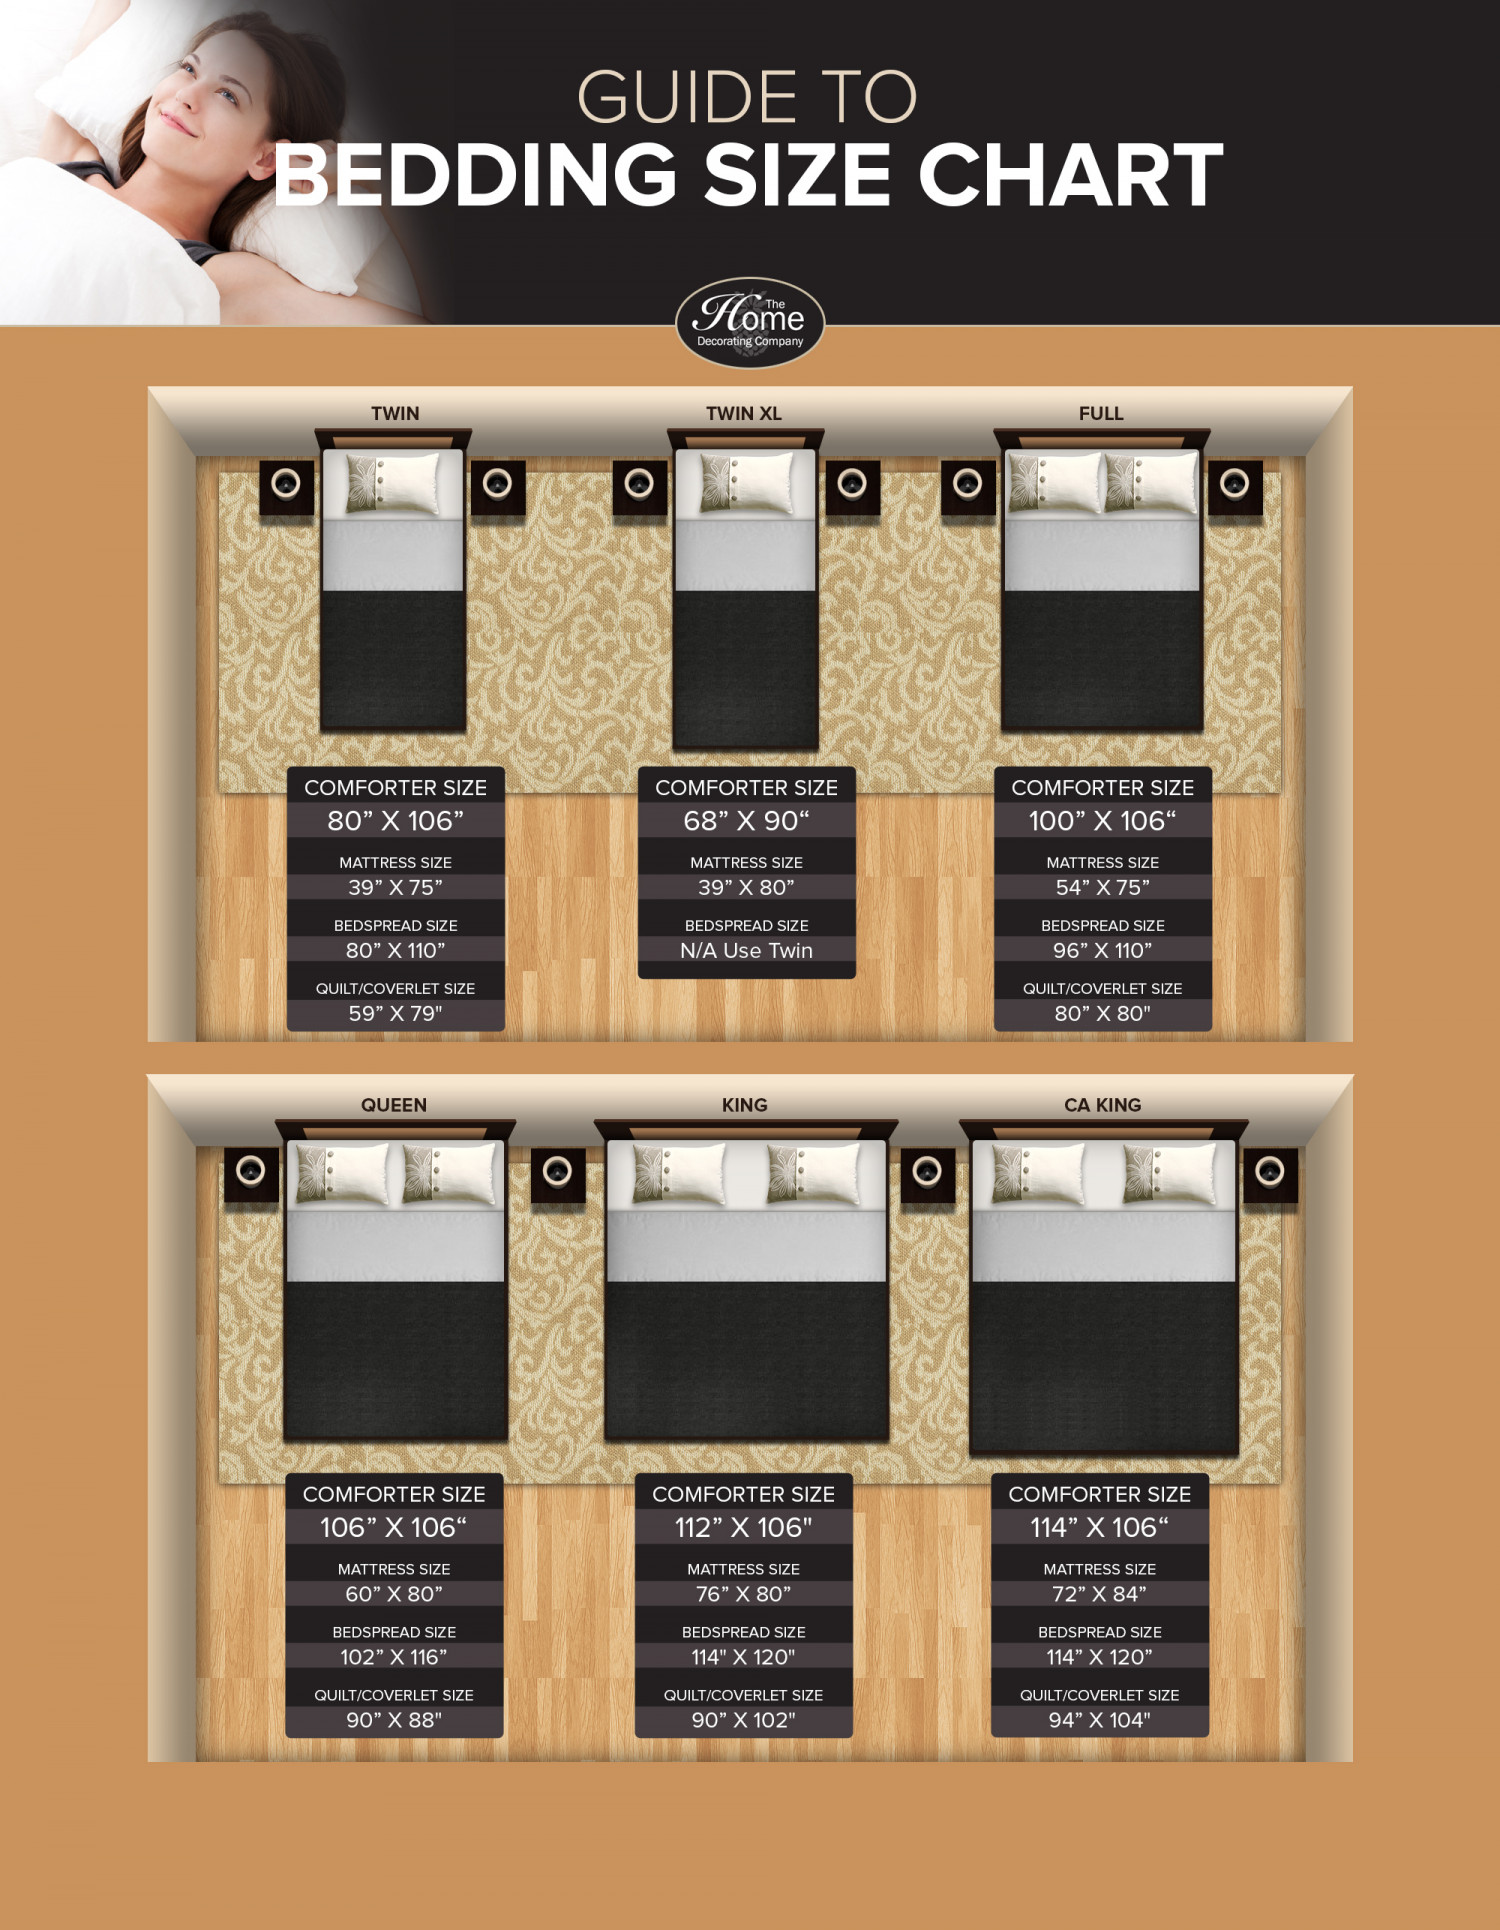 The Ultimate Guide to Bedding Size Chart Infographic